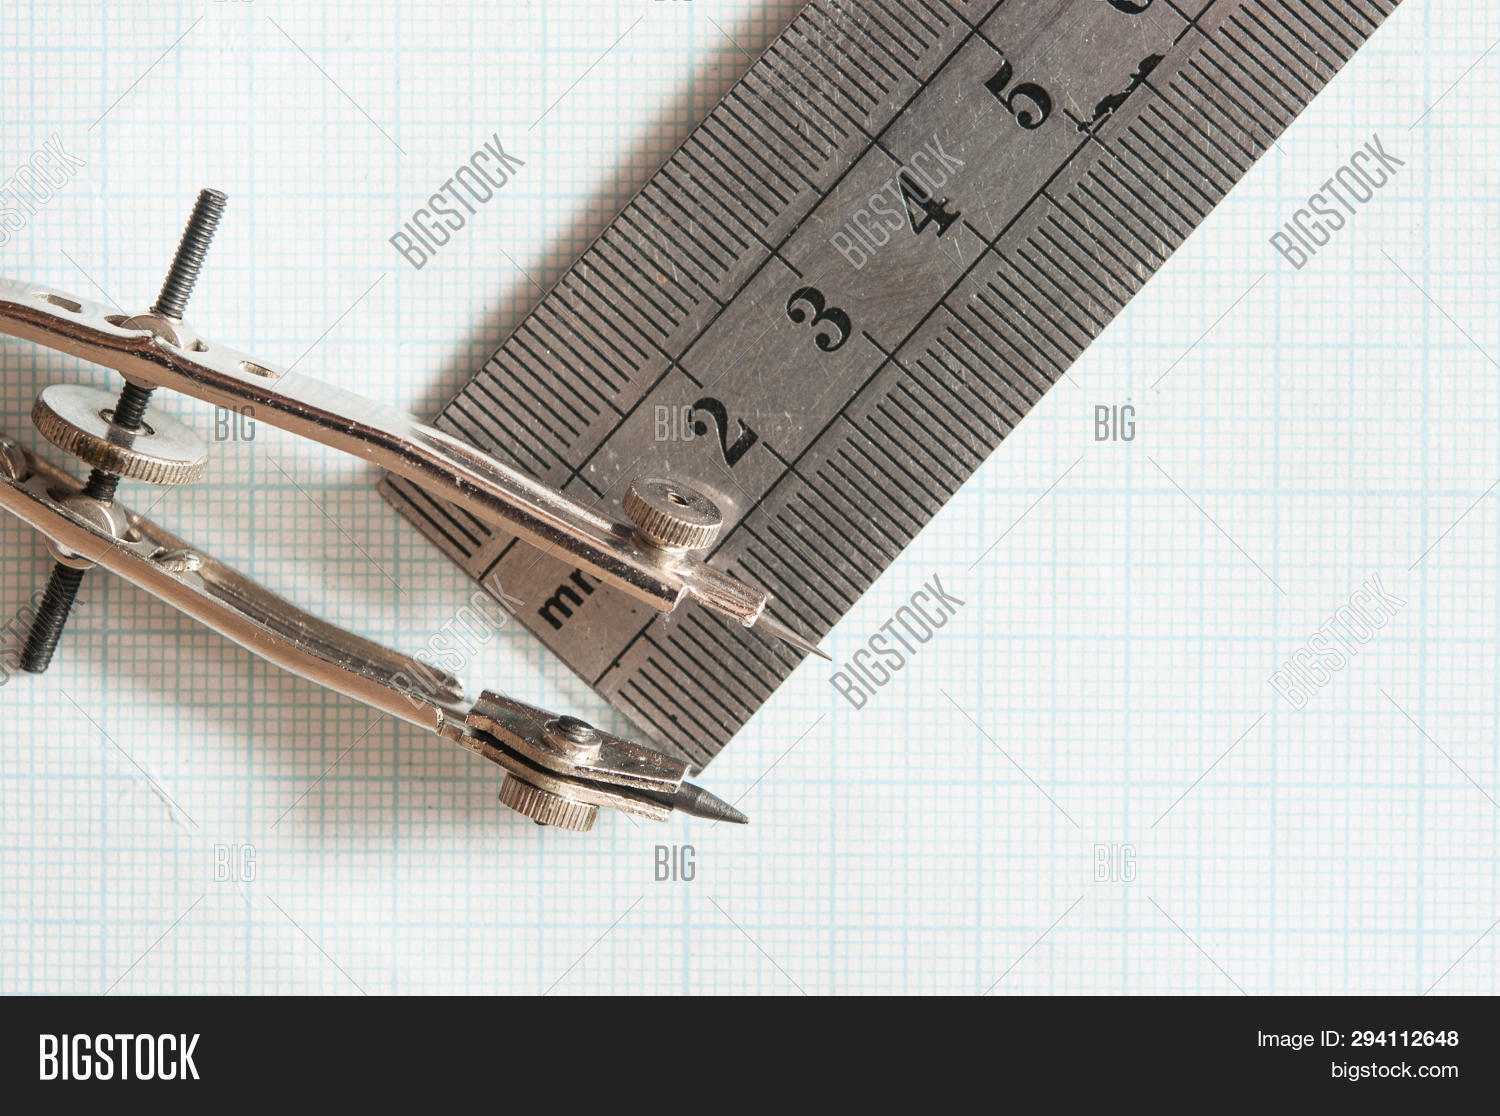 angle,architect,background,blank,blue,compass,construction,copy,design,divider,drawing,education,empty,engineering,equipment,geometry,graph,graphic,grid,instrument,math,mathematics,maths,measurement,mechanical,office,paper,pencil,plan,project,protractor,rubber,ruler,school,sheet,space,square,tool